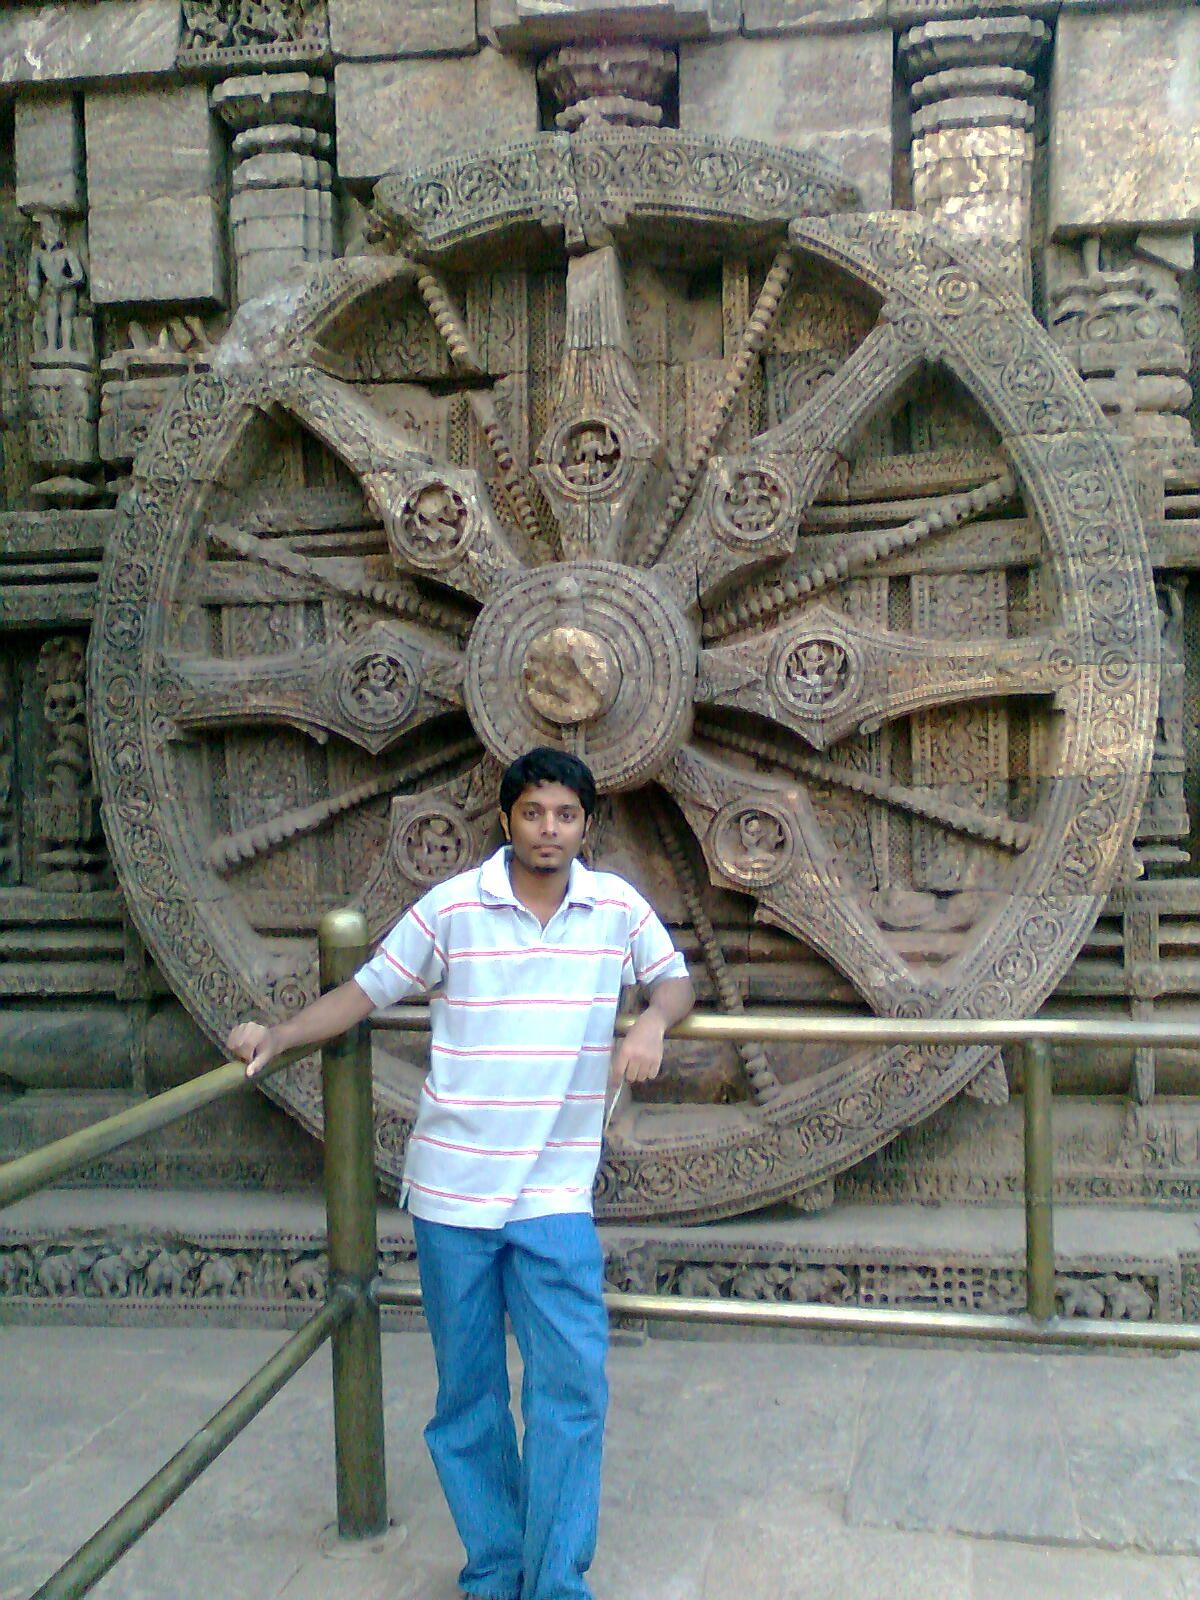 This photo is from my trip to Sun Temple in Konark, Orissa in year 2009 , also known as the Black Pagoda.  It was supposedly built by king Narasimhadeva I of Eastern Ganga Dynasty around 1250. It has been built in the shape of a gigantic chariot with elaborately carved stone wheels, pillars and walls. A major part of the structure is now in ruins. The temple is a UNESCO World Heritage Site.